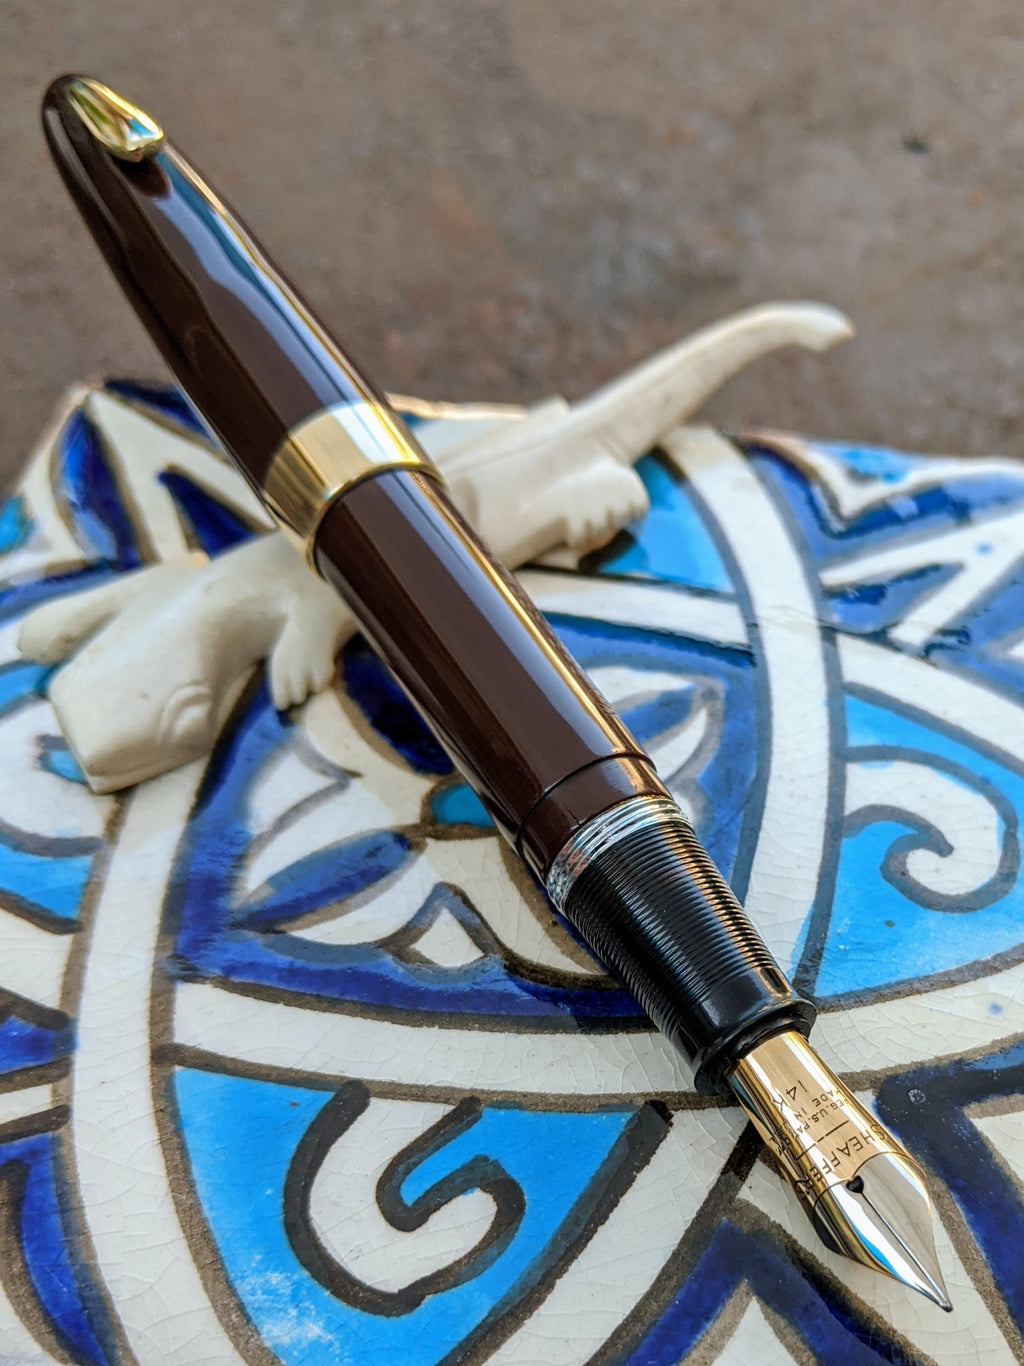 1948 Umber Sheaffer Tuckaway Sovereign - extra-fine